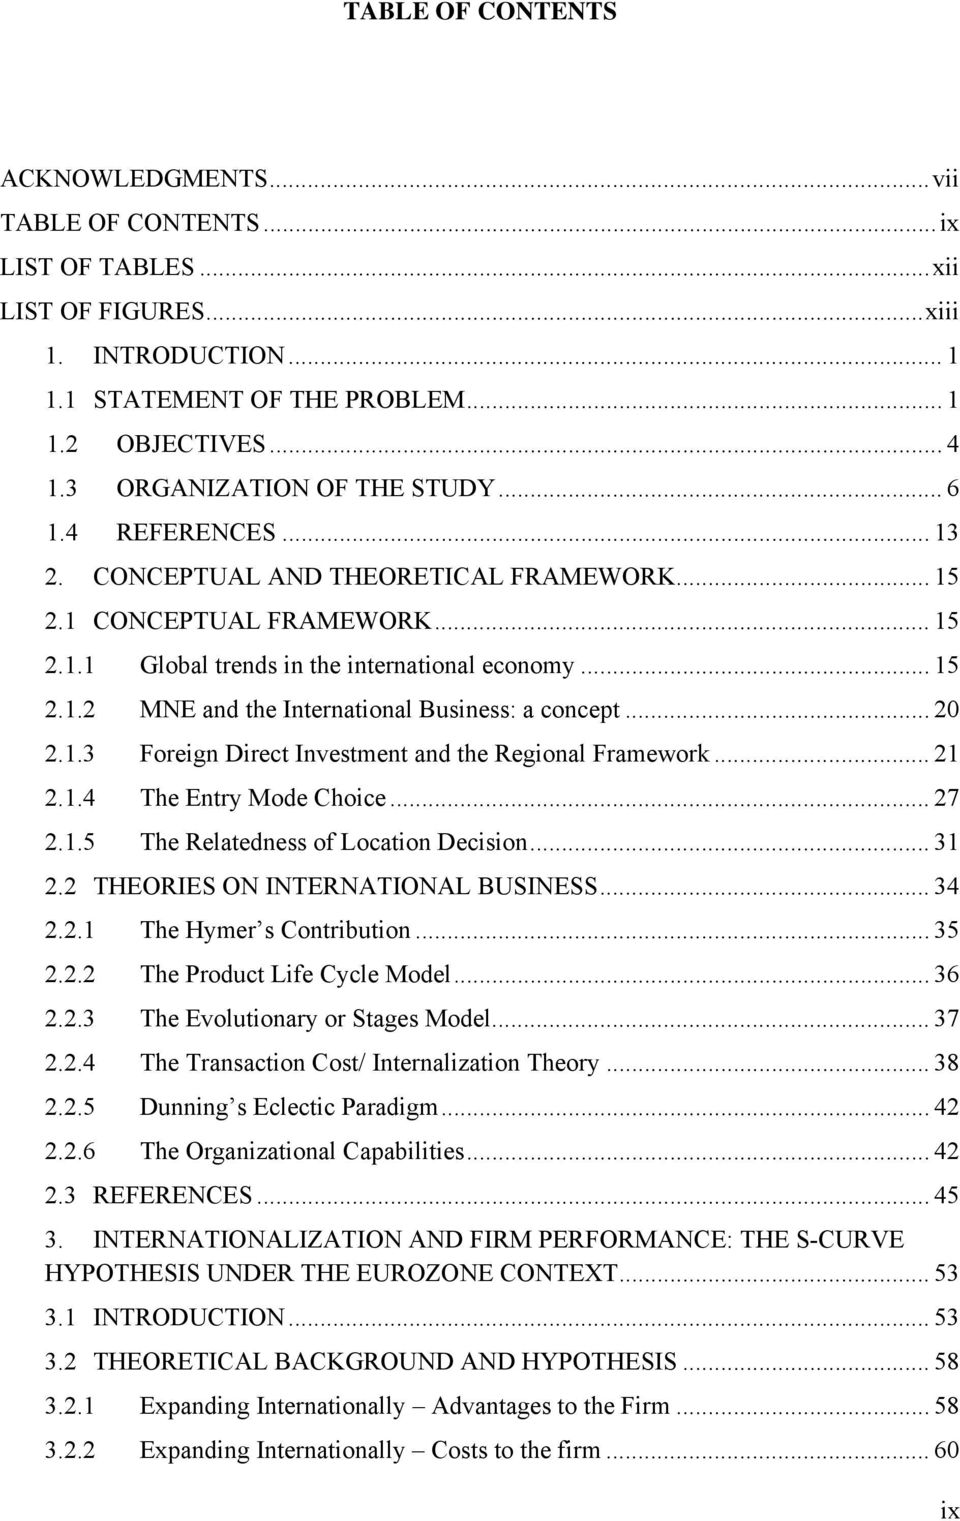 .. 20 2.1.3 Foreign Direct Investment and the Regional Framework... 21 2.1.4 The Entry Mode Choice... 27 2.1.5 The Relatedness of Location Decision... 31 2.2 THEORIES ON INTERNATIONAL BUSINESS... 34 2.